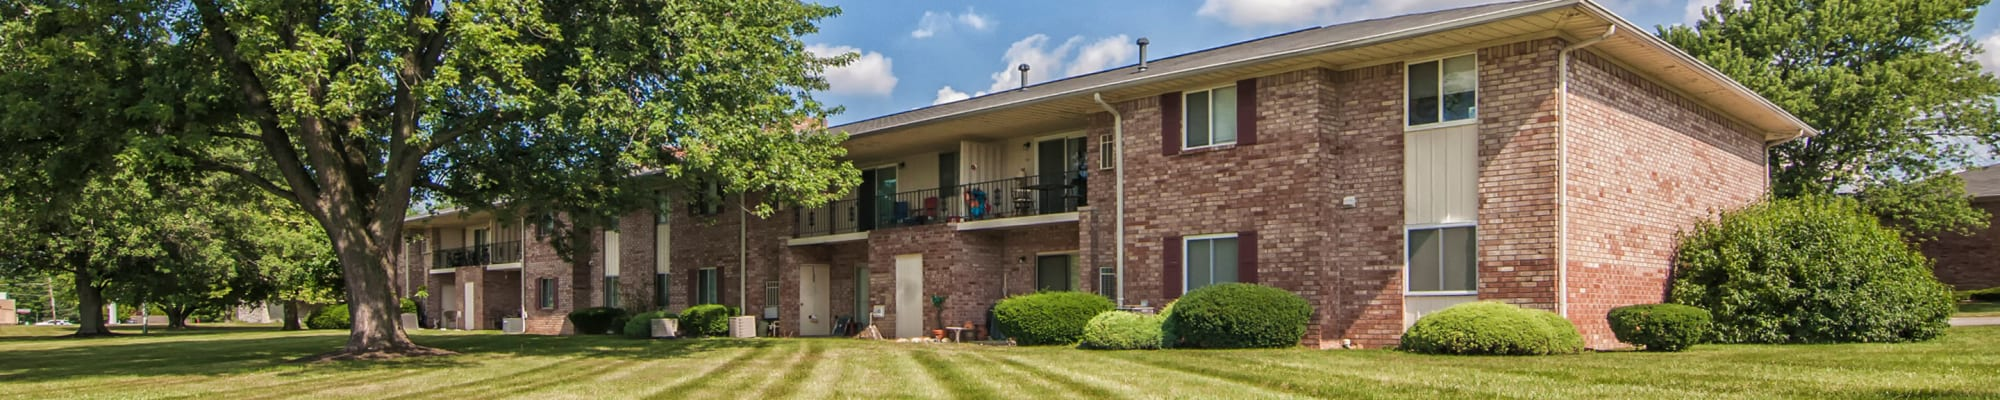 View the resident portal for Beech Meadow in Beech Grove, Indiana.